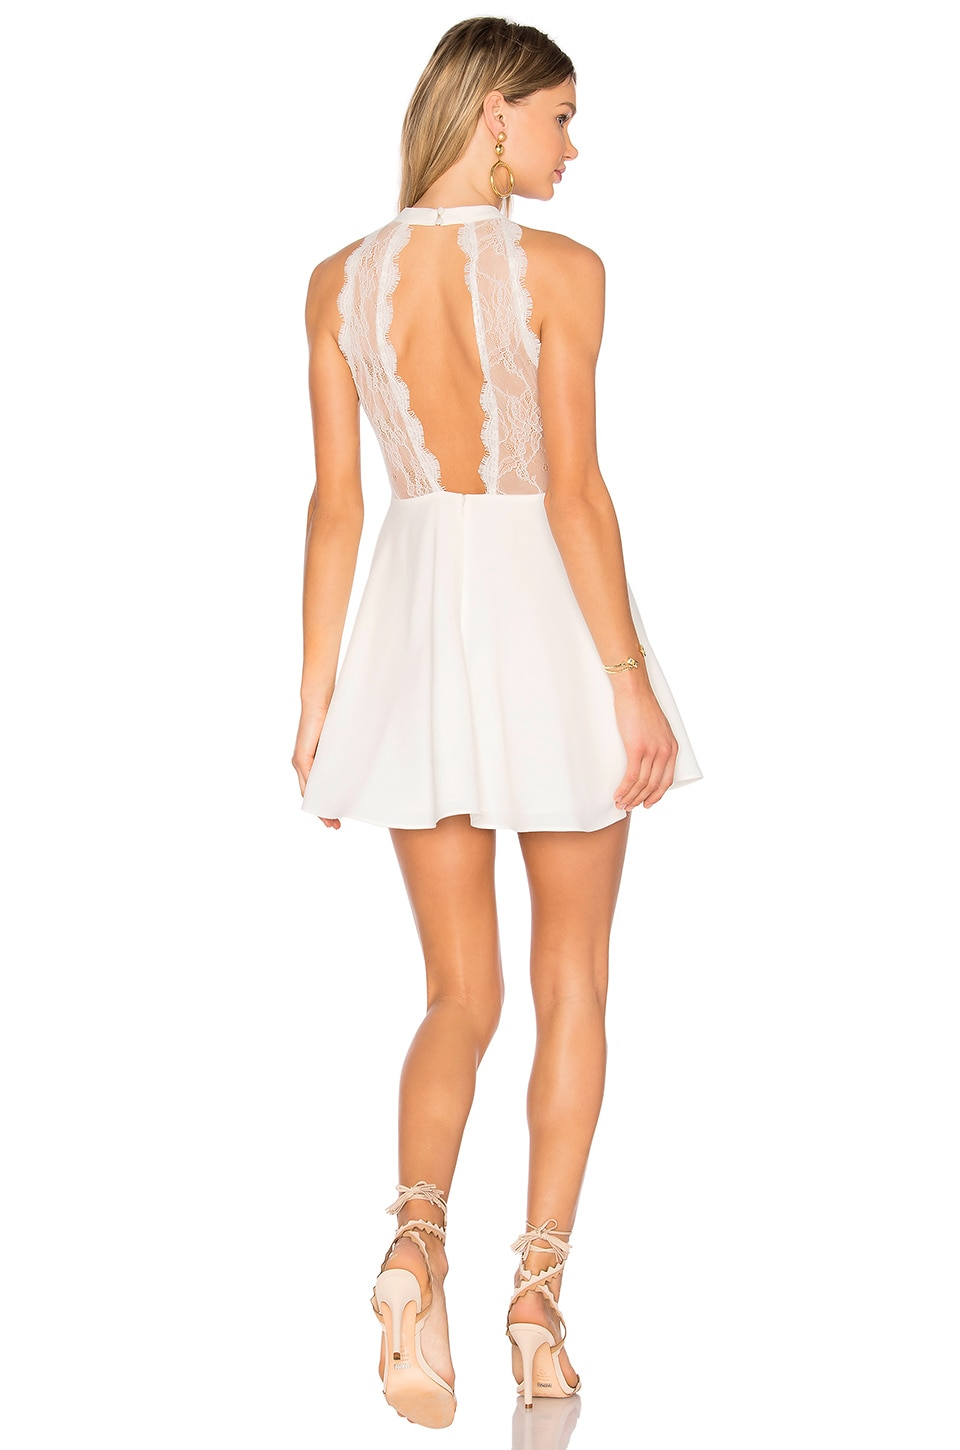 NBD Gimmie More Dress in Ivory